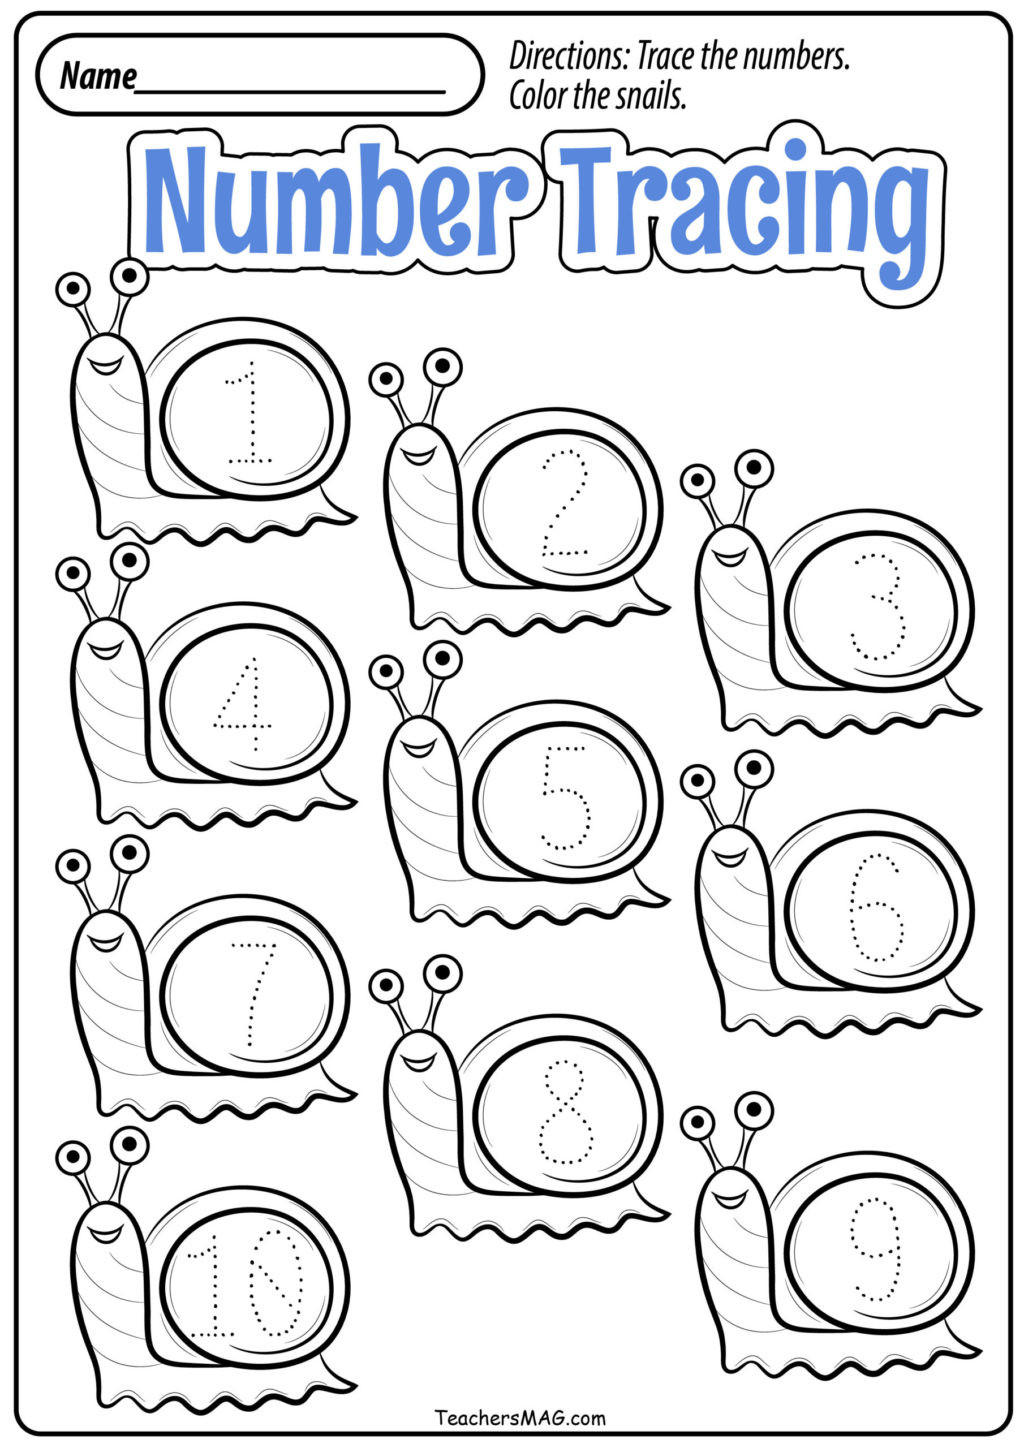 Second Grade social Studies Worksheets Worksheet Printable Cutting Activities for toddlers 2nd